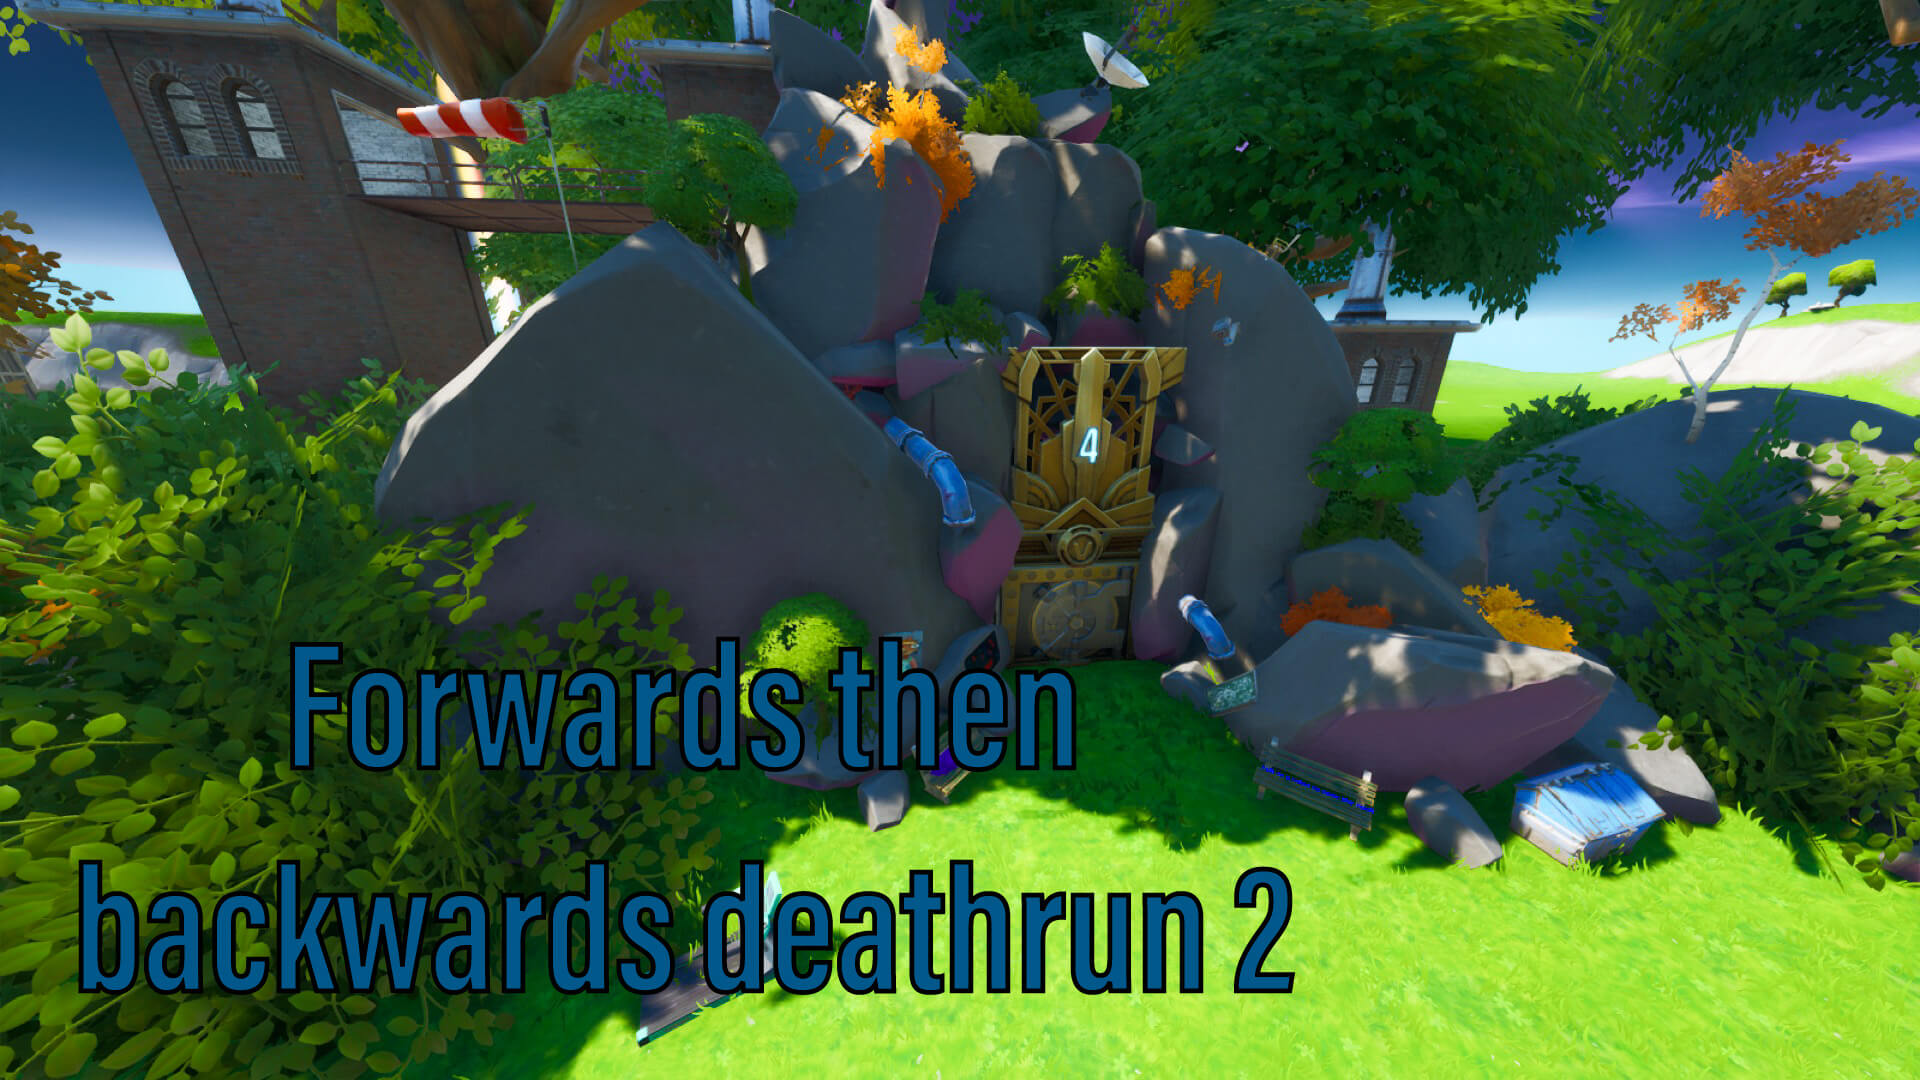 FORWARDS THEN BACKWARDS DEATHRUN 2